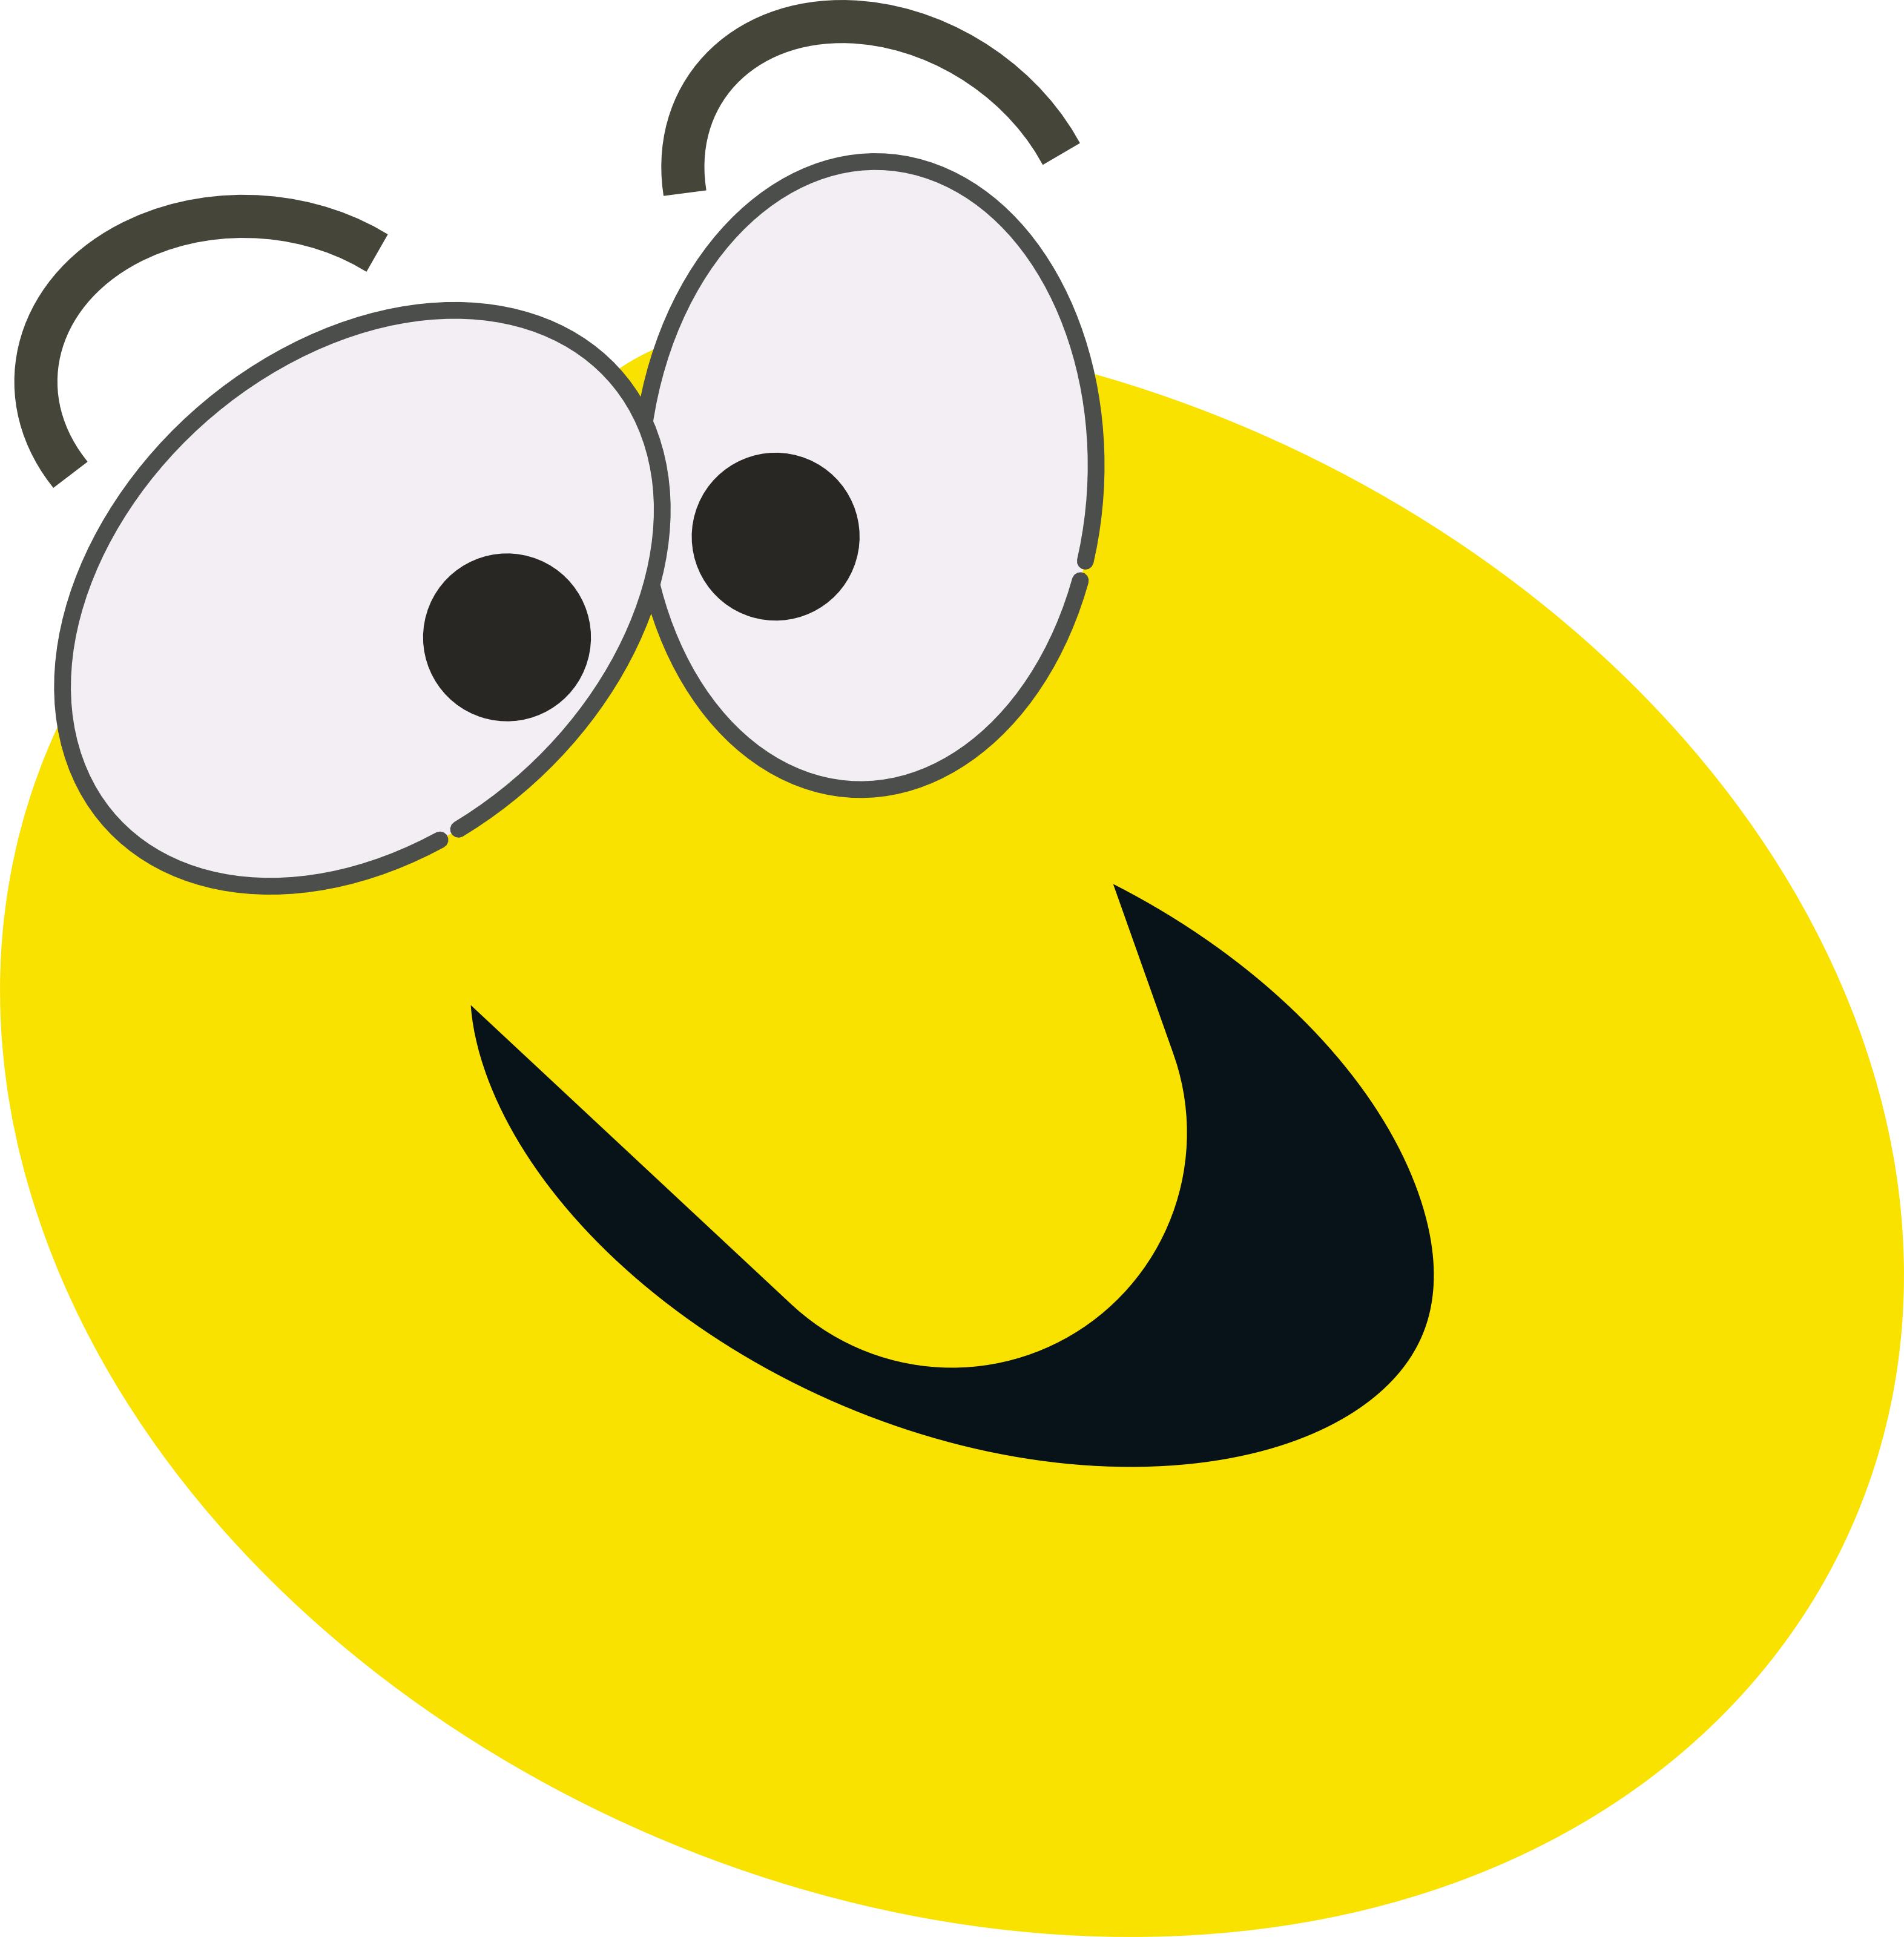 Feelings clipart cartoon face. Smiley graphic free clip